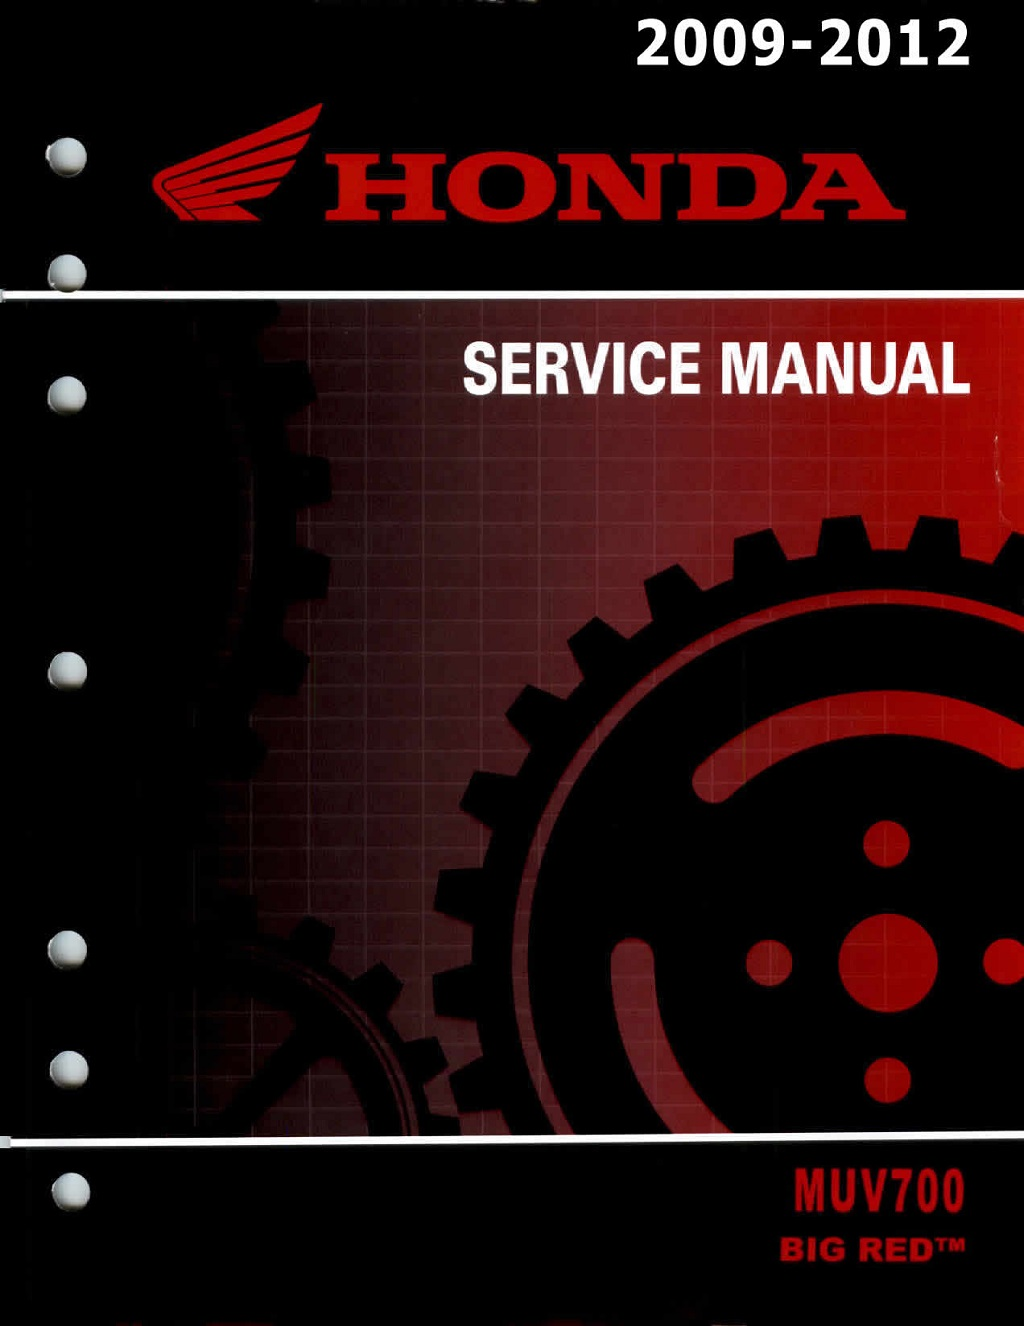 Workshop Manual for Honda MUV700 Big Red (2009-2012)